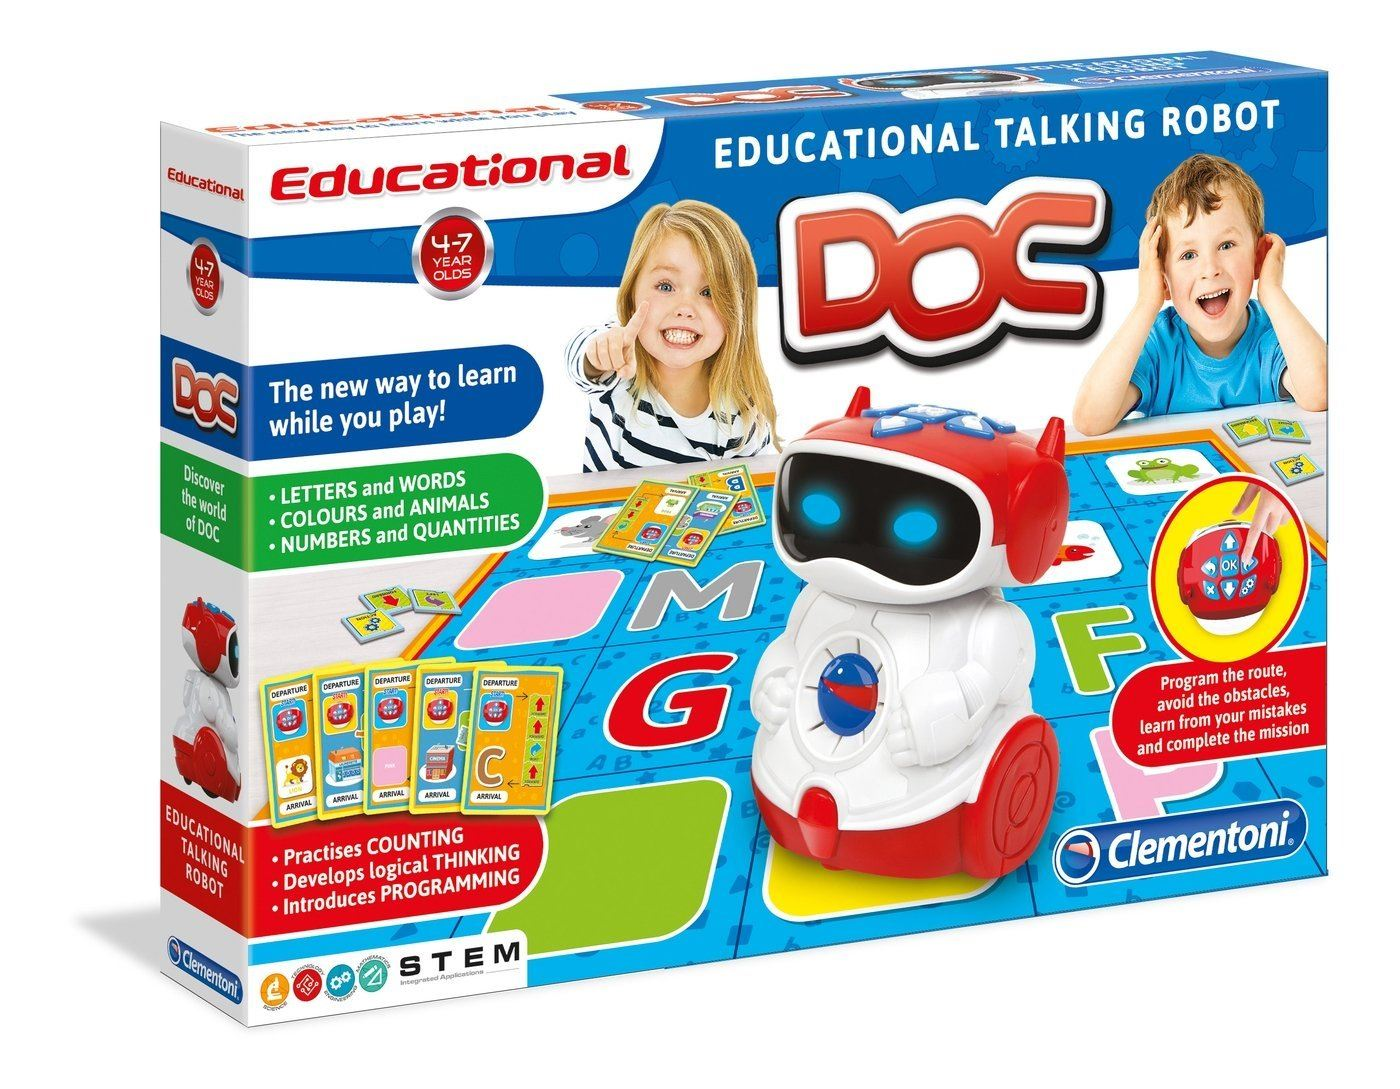 Clementoni Doc Interactive Talking Robot #61323